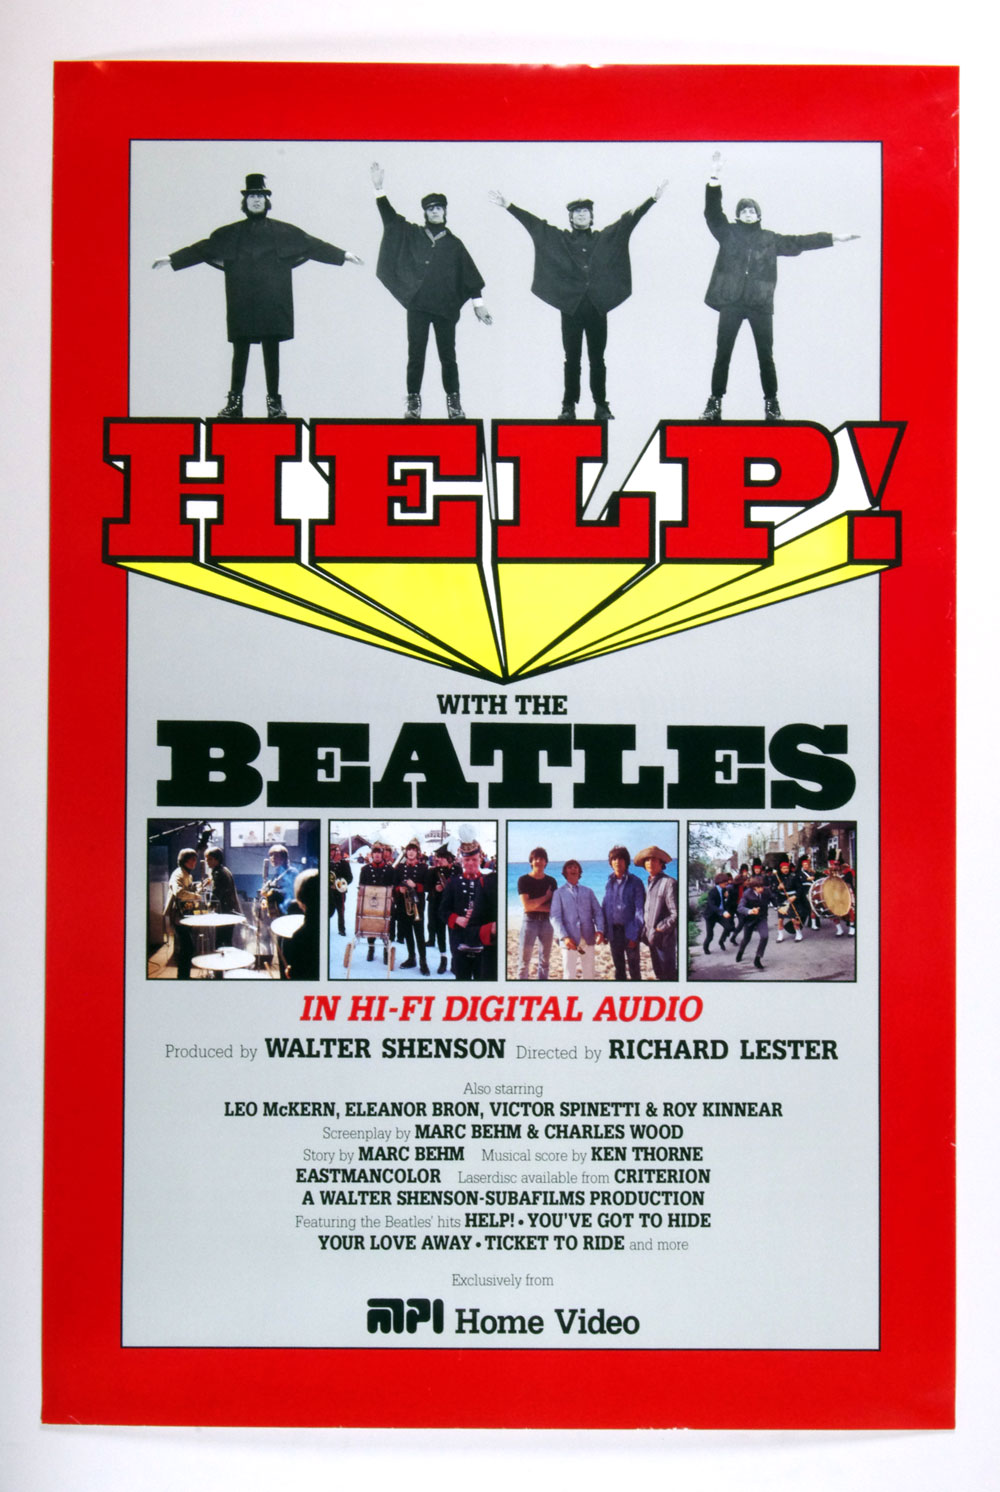 The Beatles Poster HELP! Movie Home Video Release Promo 24 x 36